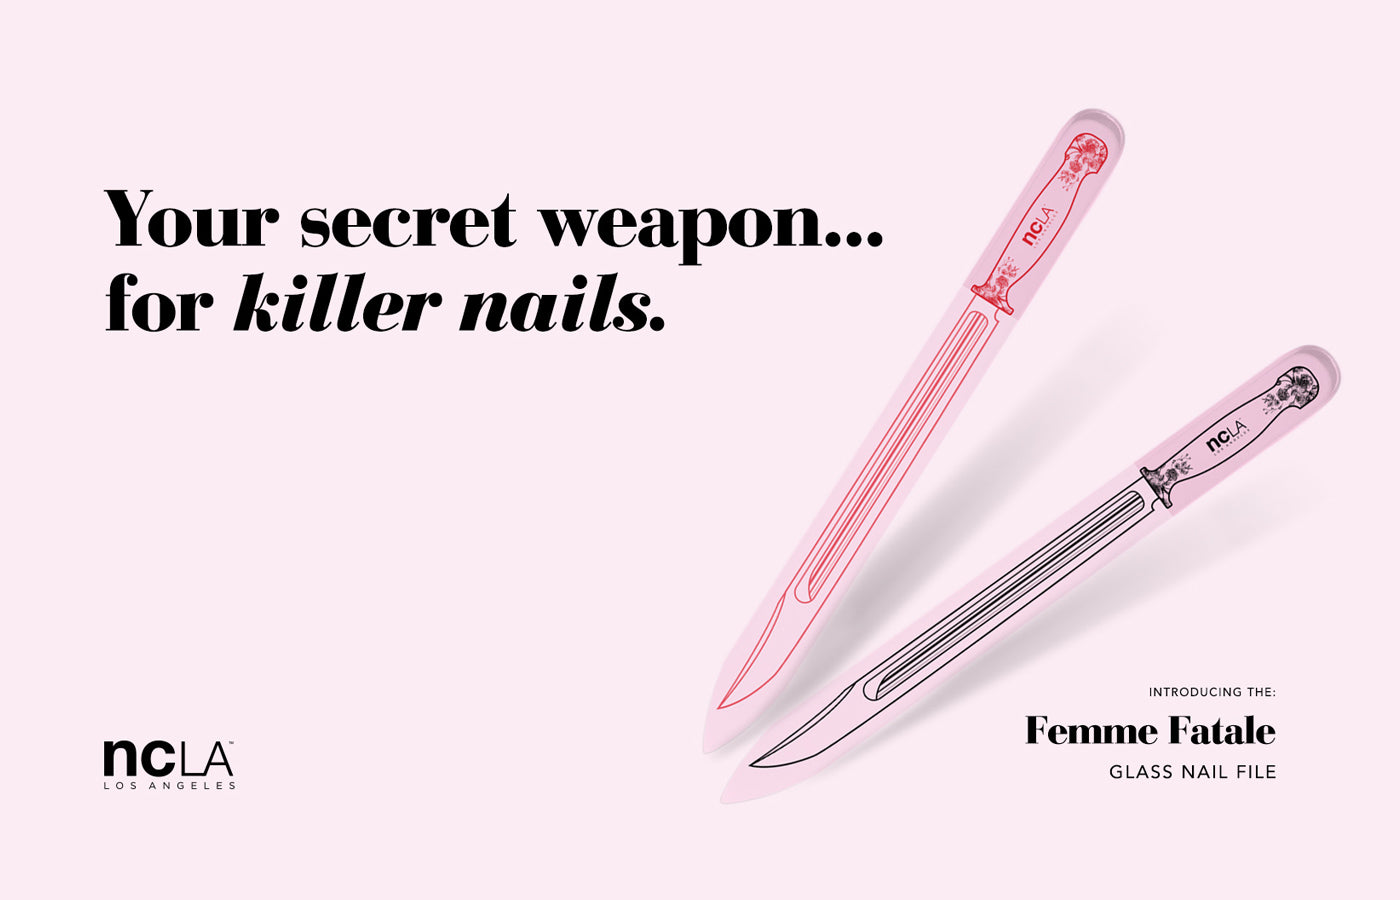 LAUNCHED: Femme Fatale Glass Nail File – shopncla